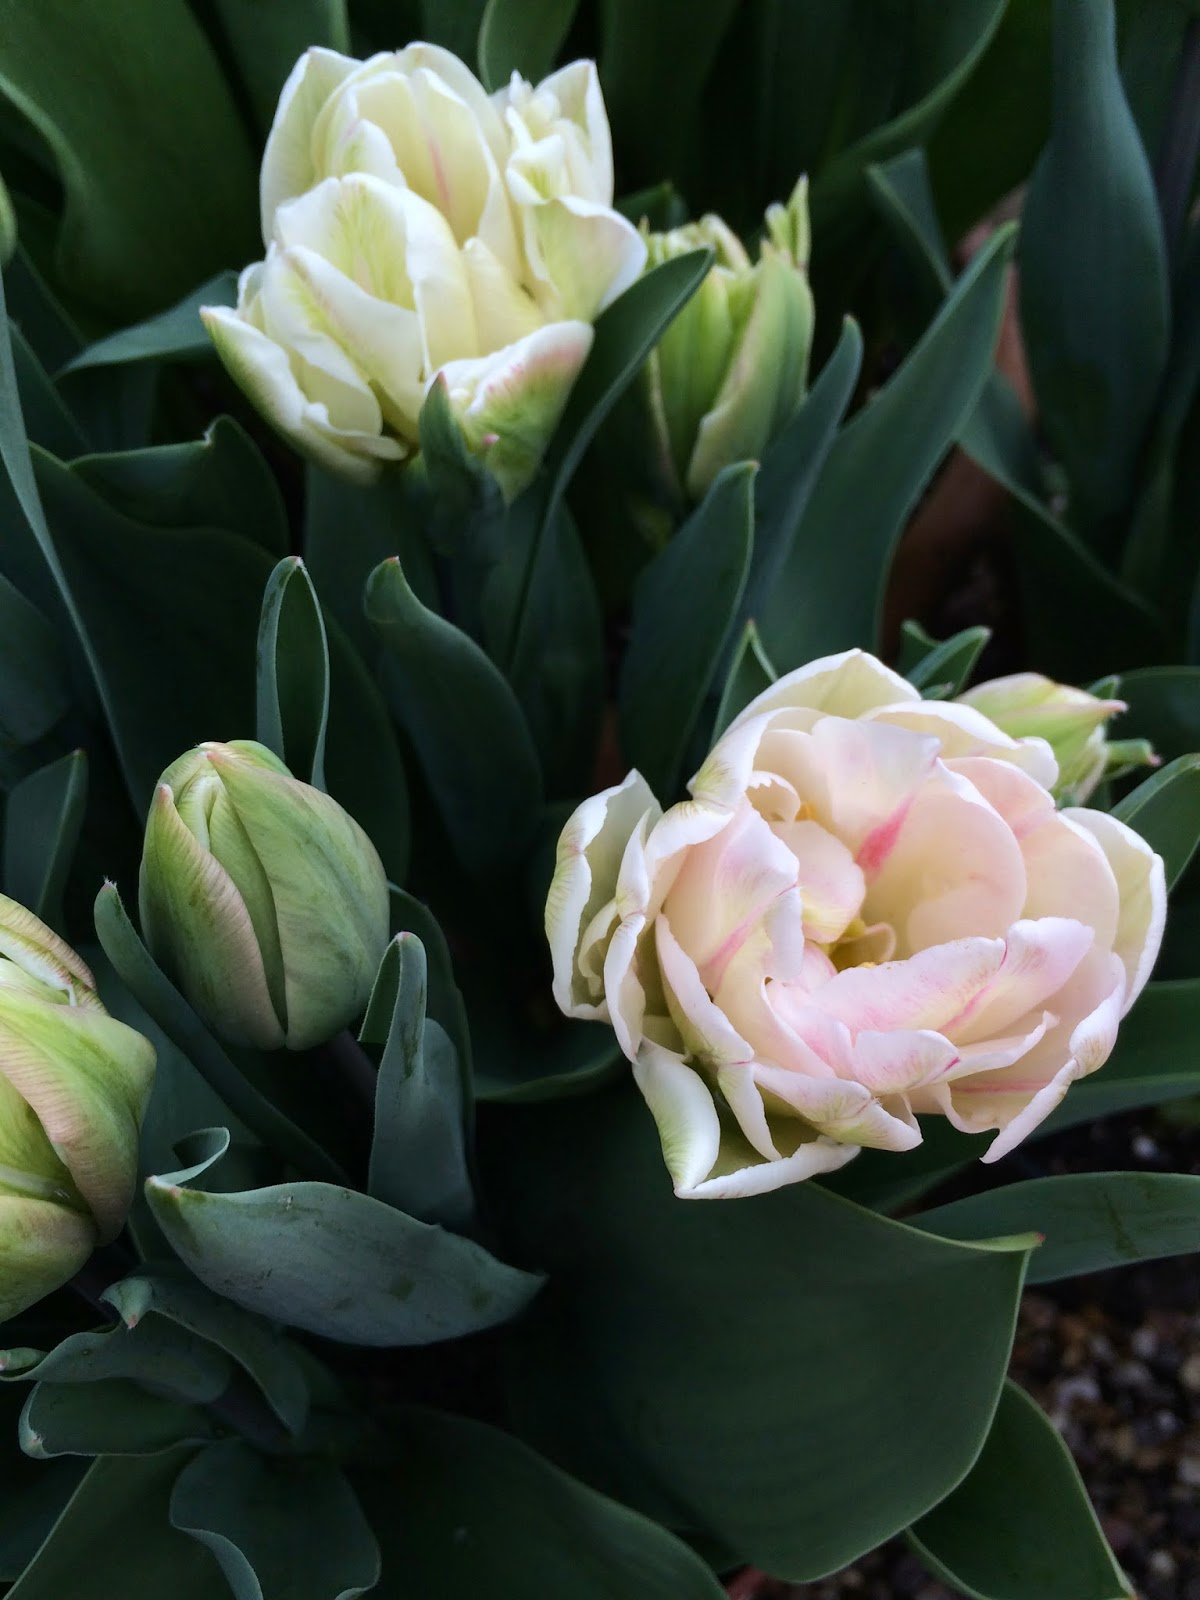 White and blush pink Finola tulips